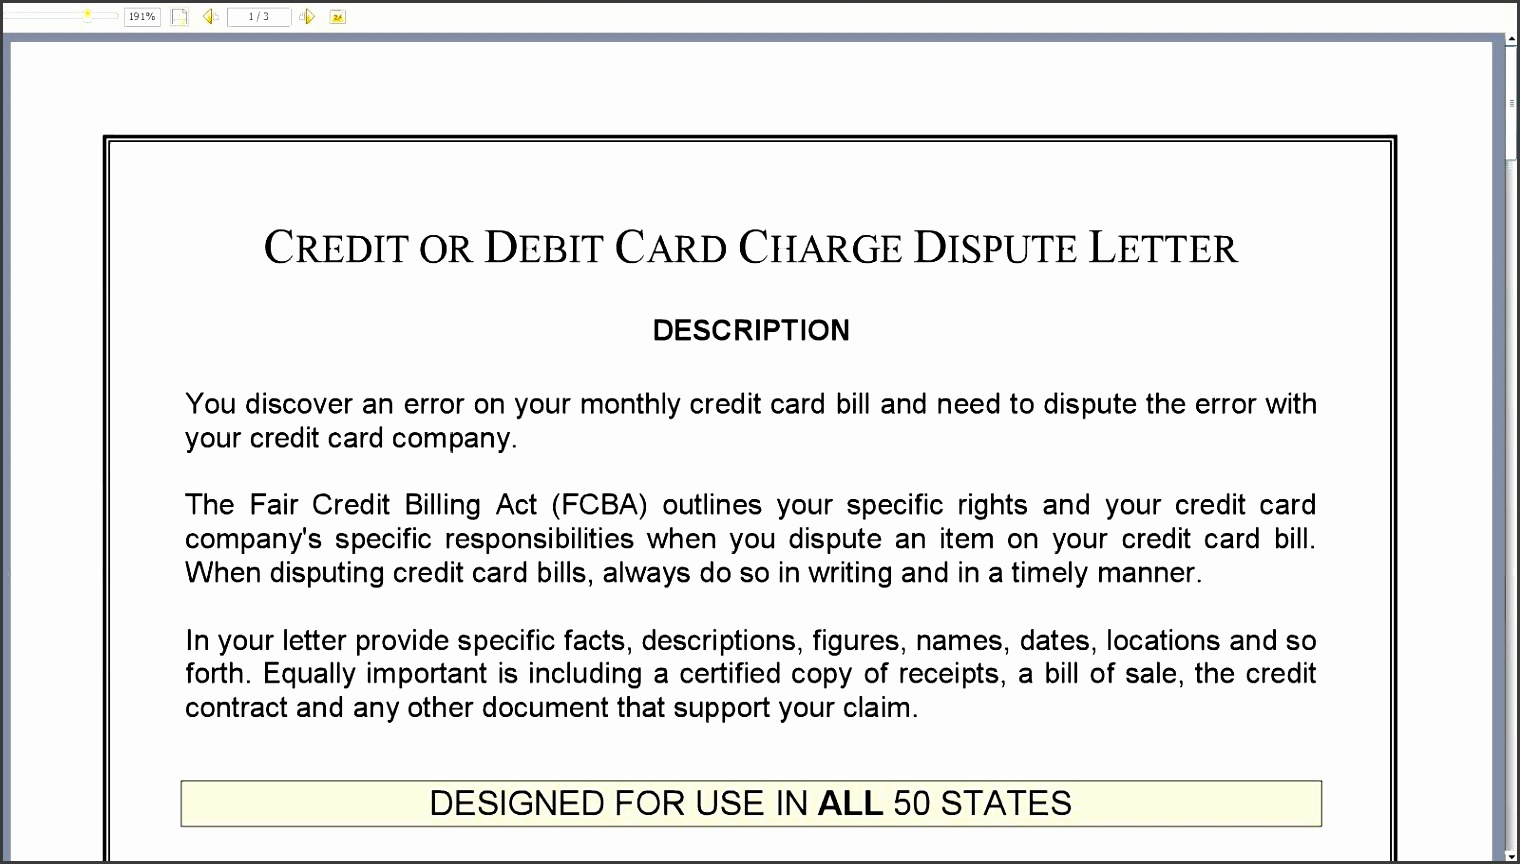 credit dispute form report equifax transunion pdf letter fedloan banking or